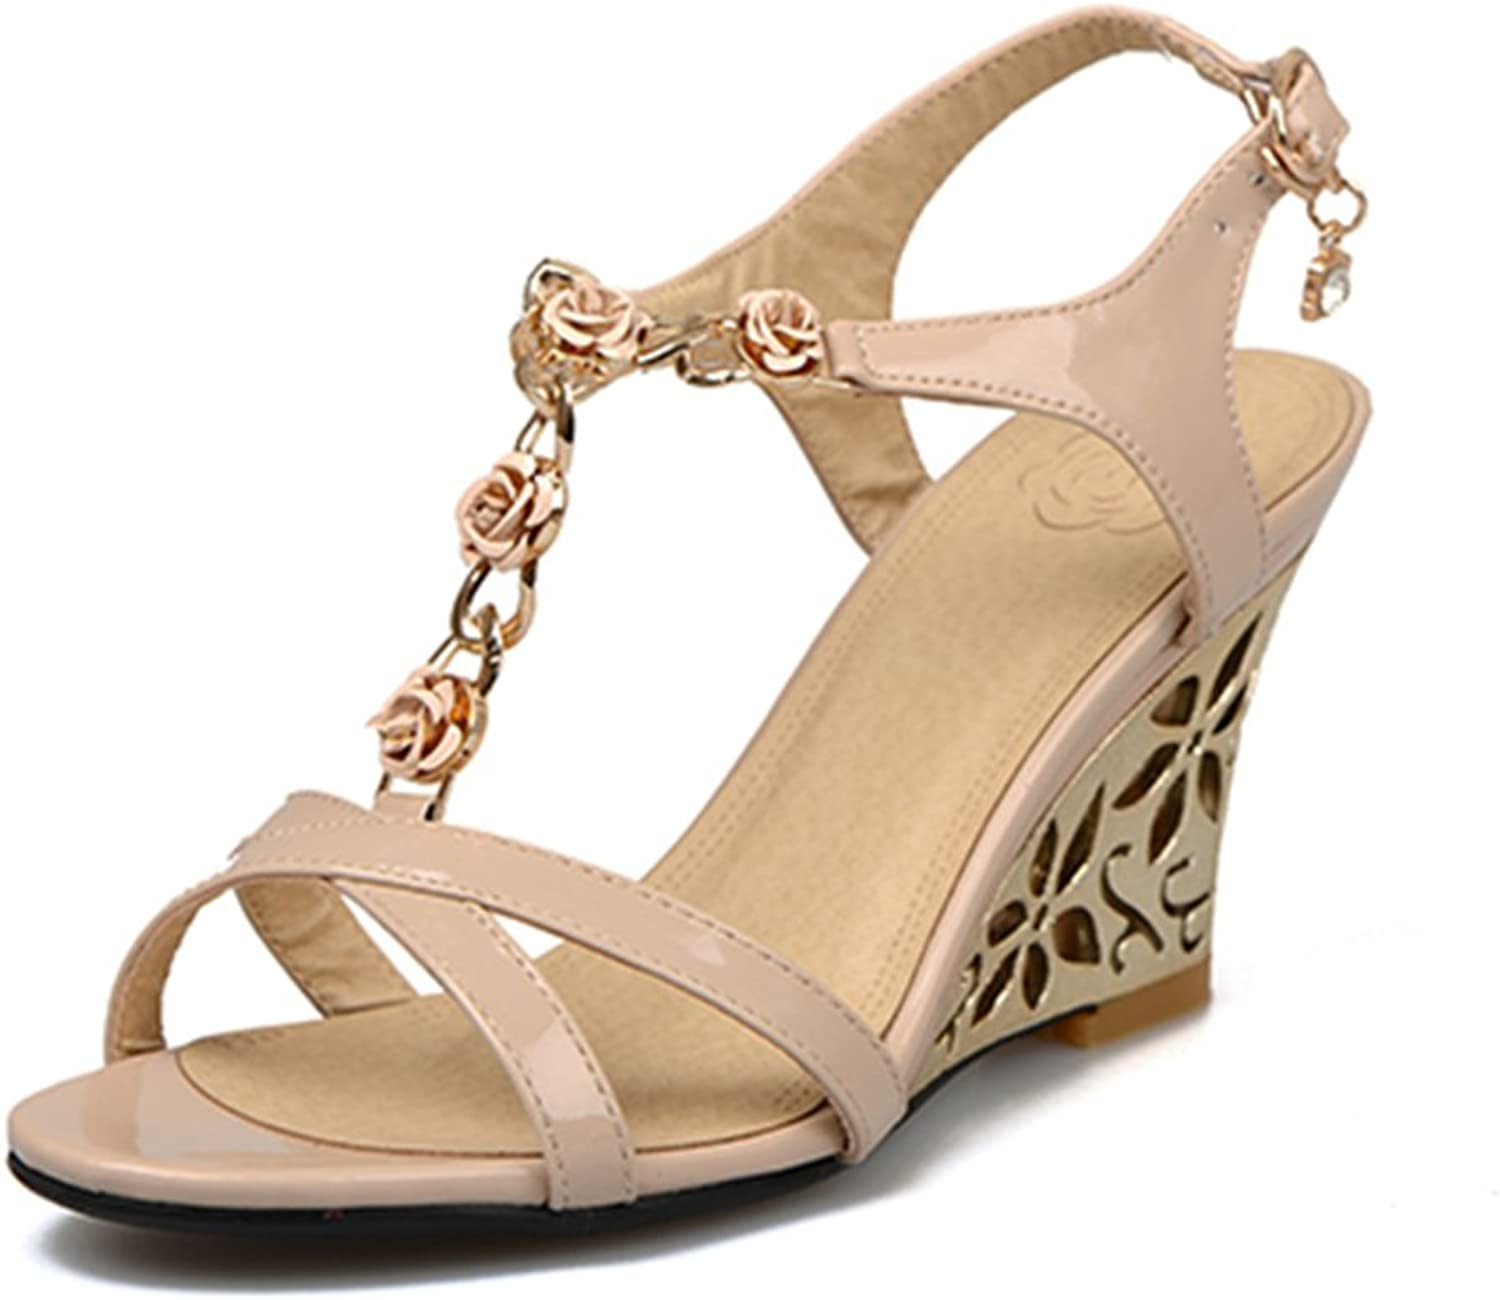 RHFDVGDS Wedge sandals Sweet flowers High student shoes